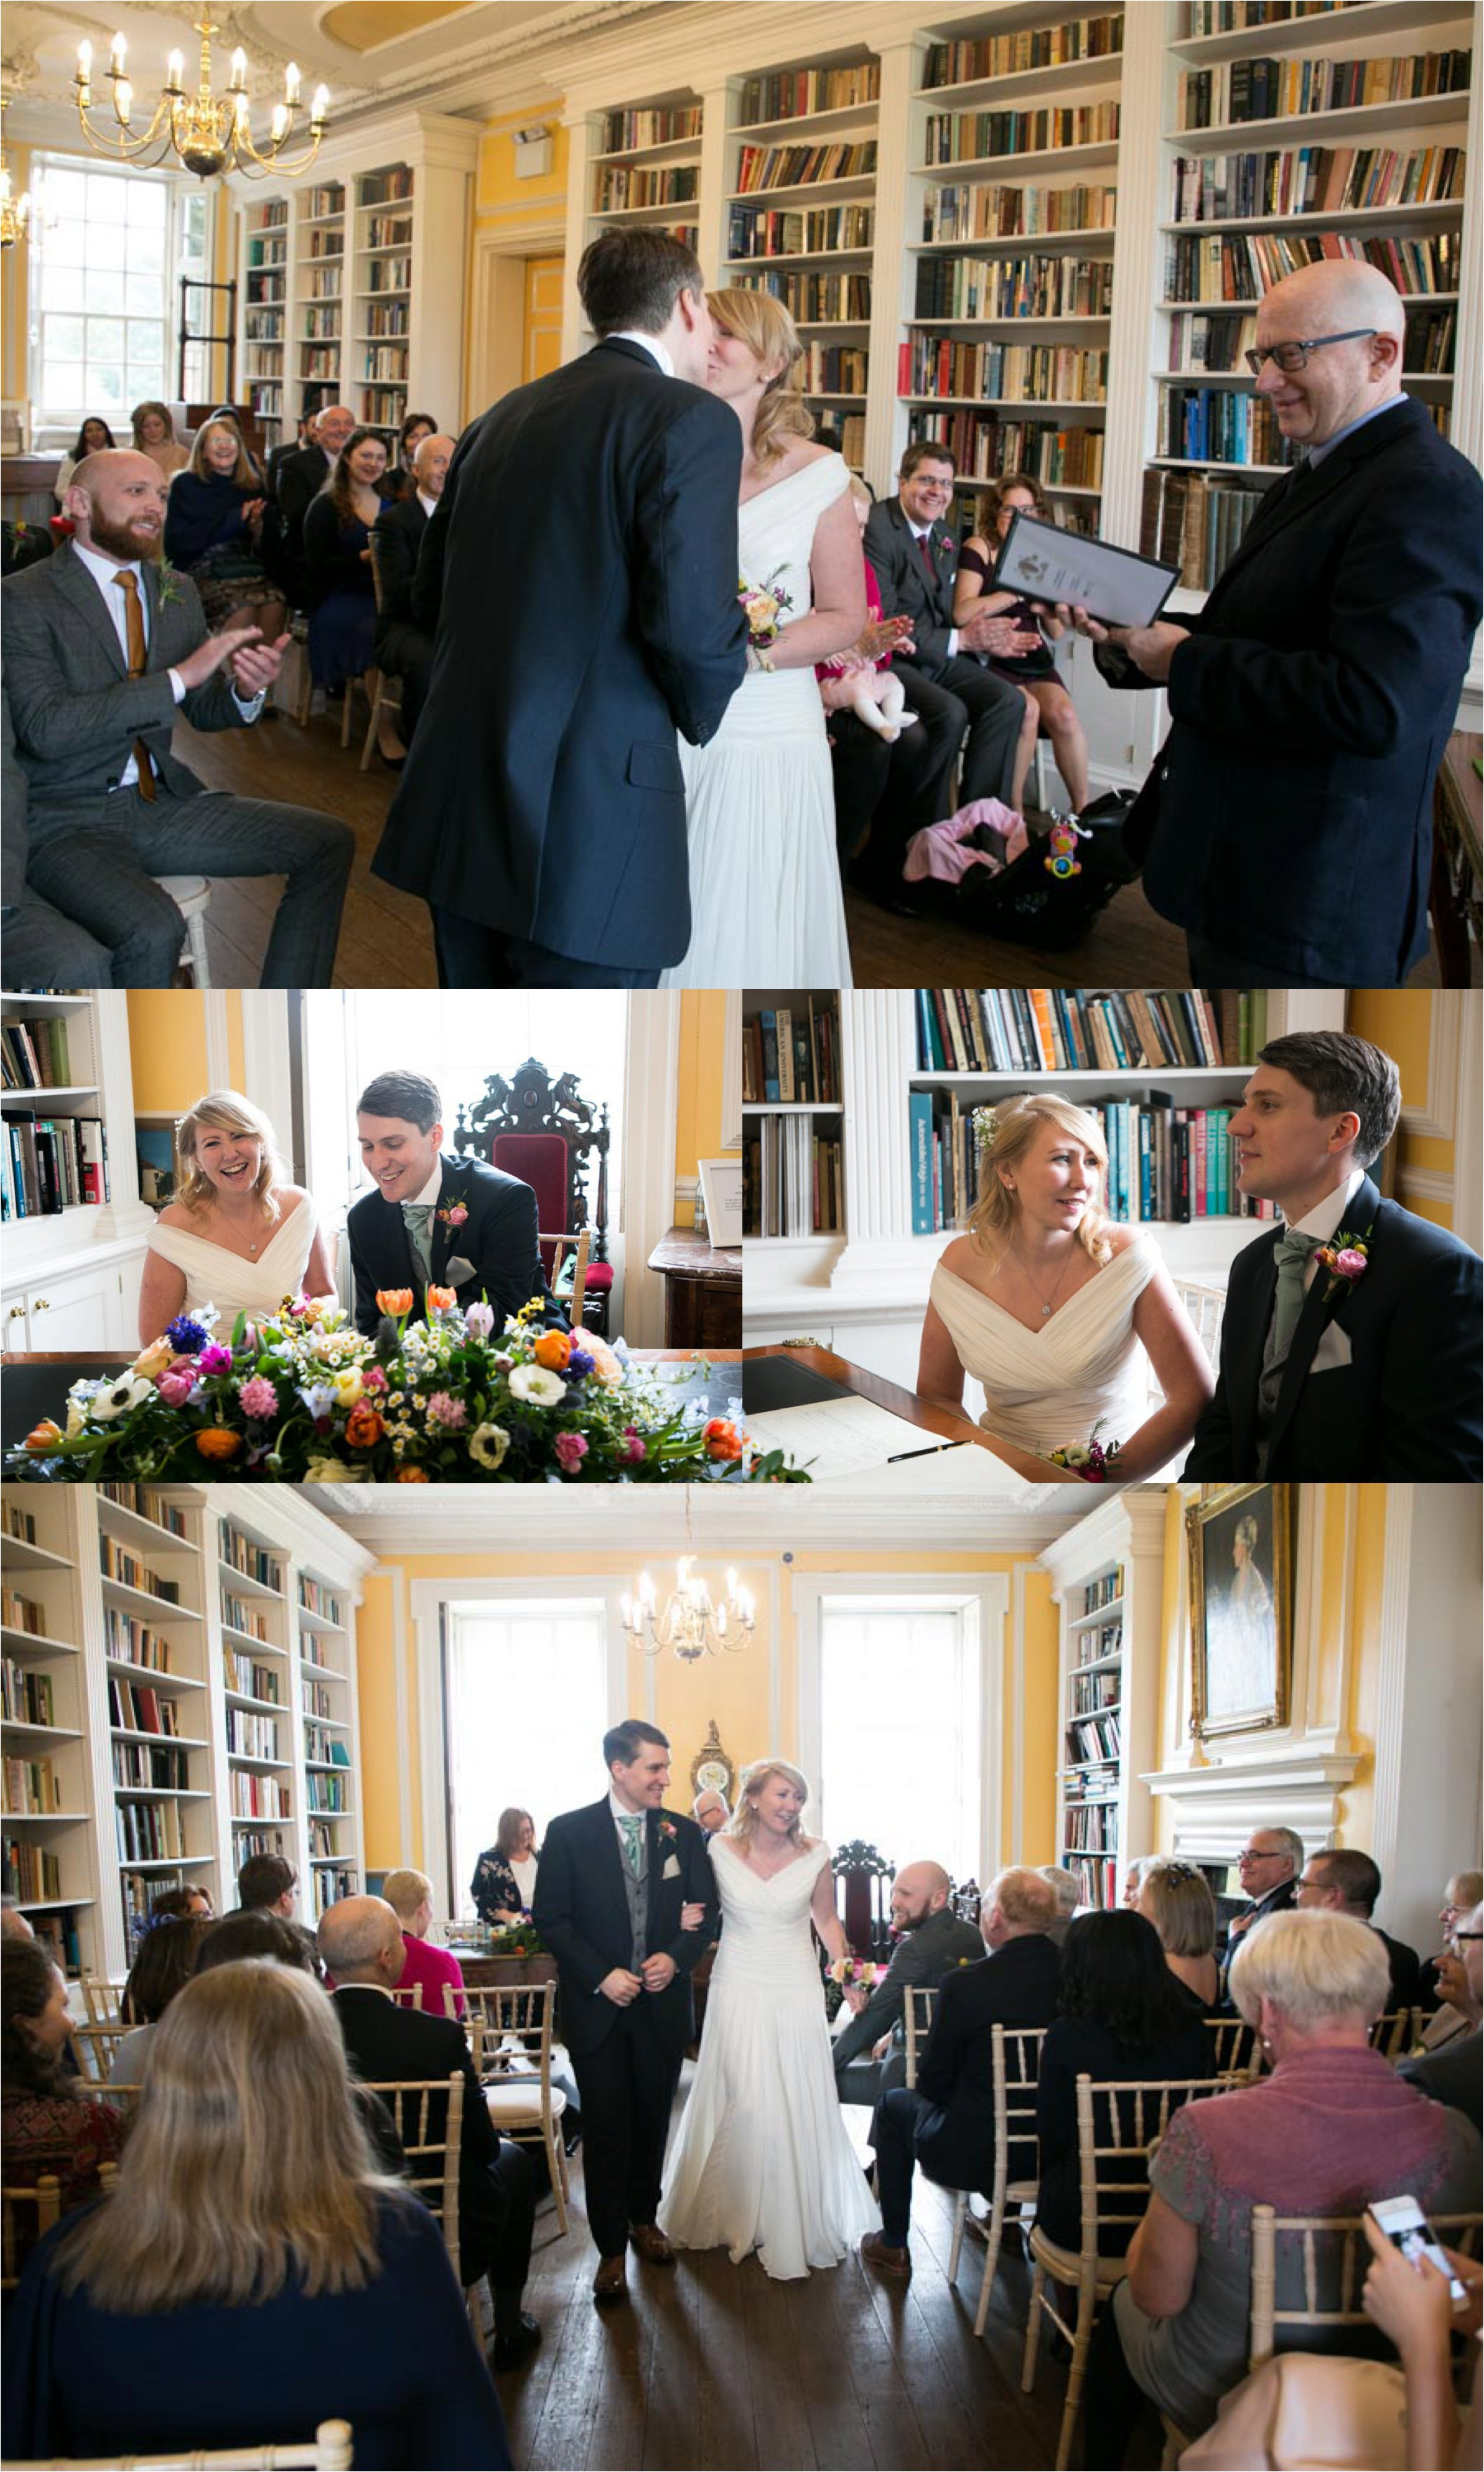 relaxed wedding photography at anstey hall cambridge